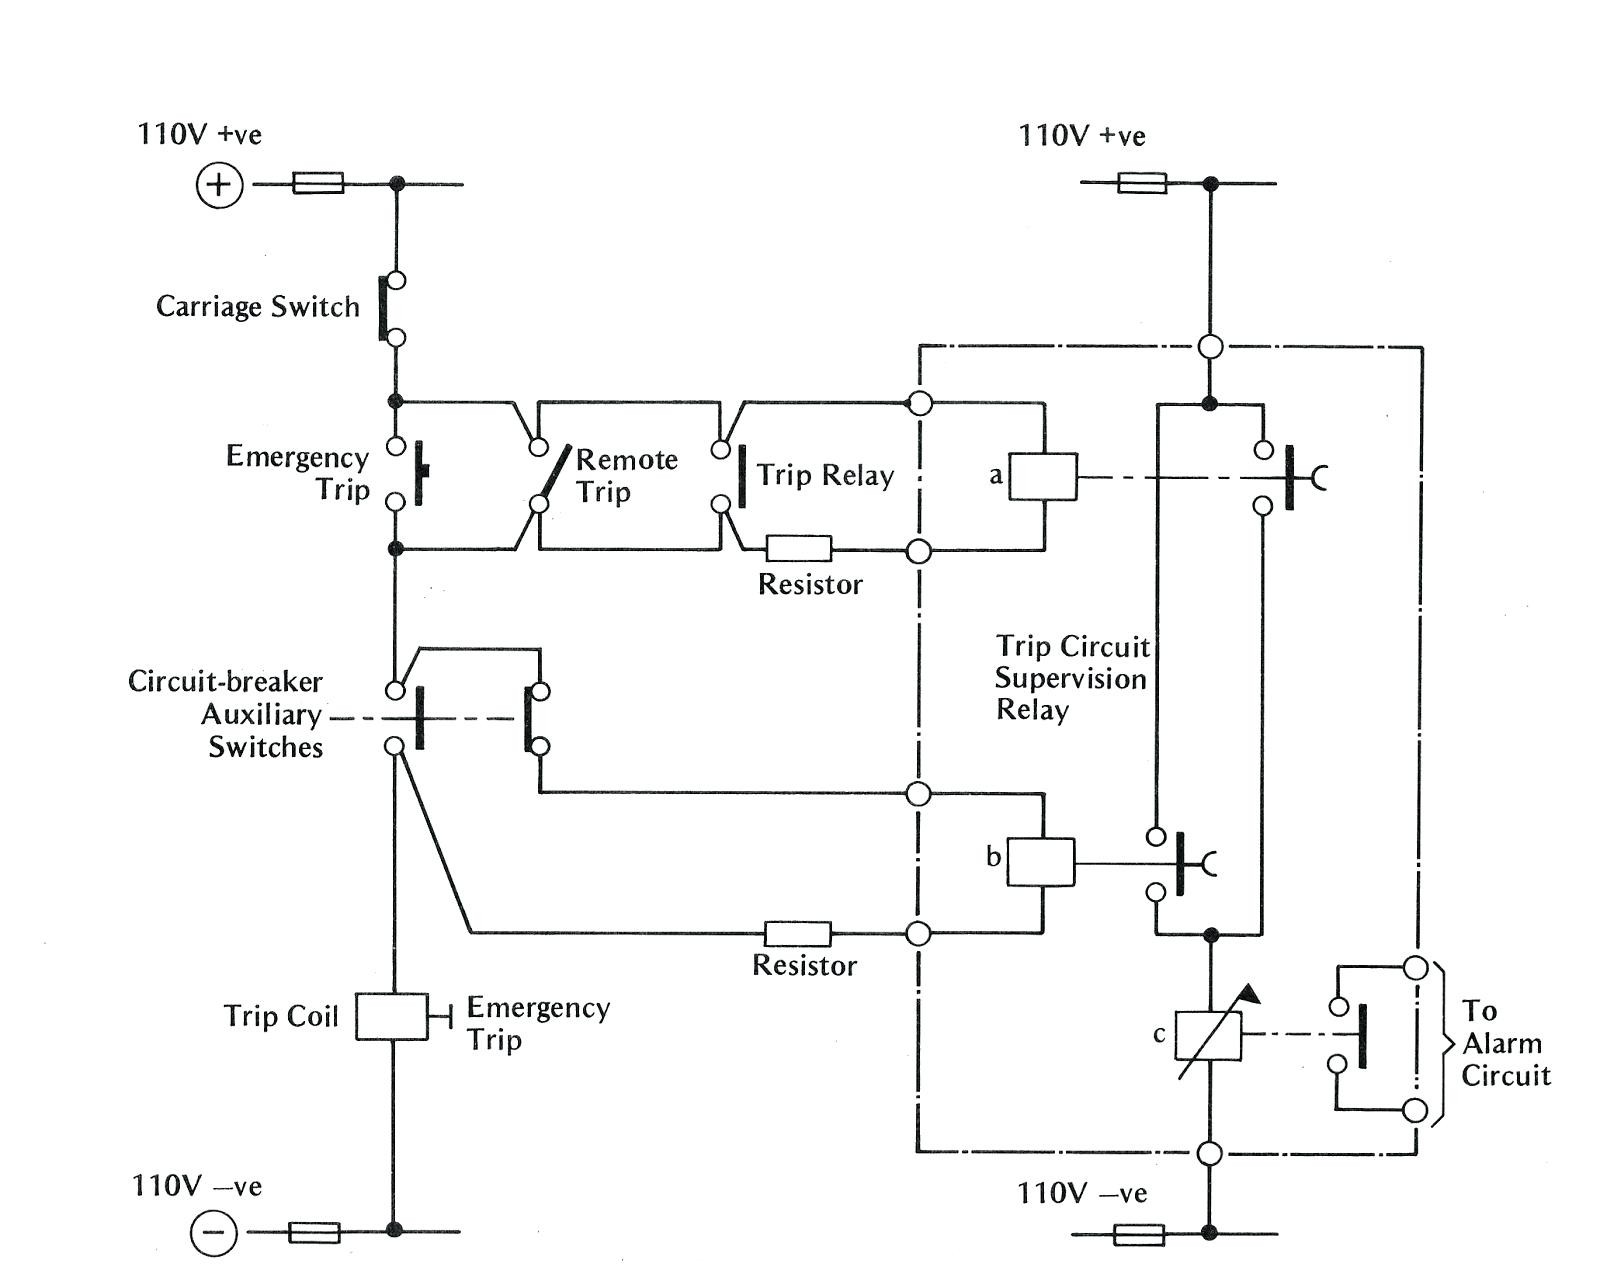 Cutler Hammer Contactor Wiring Diagram For - Wiring Liry on holophane wiring diagram, haier wiring diagram, panasonic wiring diagram, abb wiring diagram, audiovox wiring diagram, samsung wiring diagram, aiwa wiring diagram, silvertone wiring diagram, boeing wiring diagram, at&t wiring diagram, federal signal wiring diagram, viking wiring diagram, international comfort products wiring diagram, toshiba wiring diagram, polk audio wiring diagram, schlage wiring diagram, rca wiring diagram, general electric wiring diagram, frigidaire wiring diagram, whelen wiring diagram,